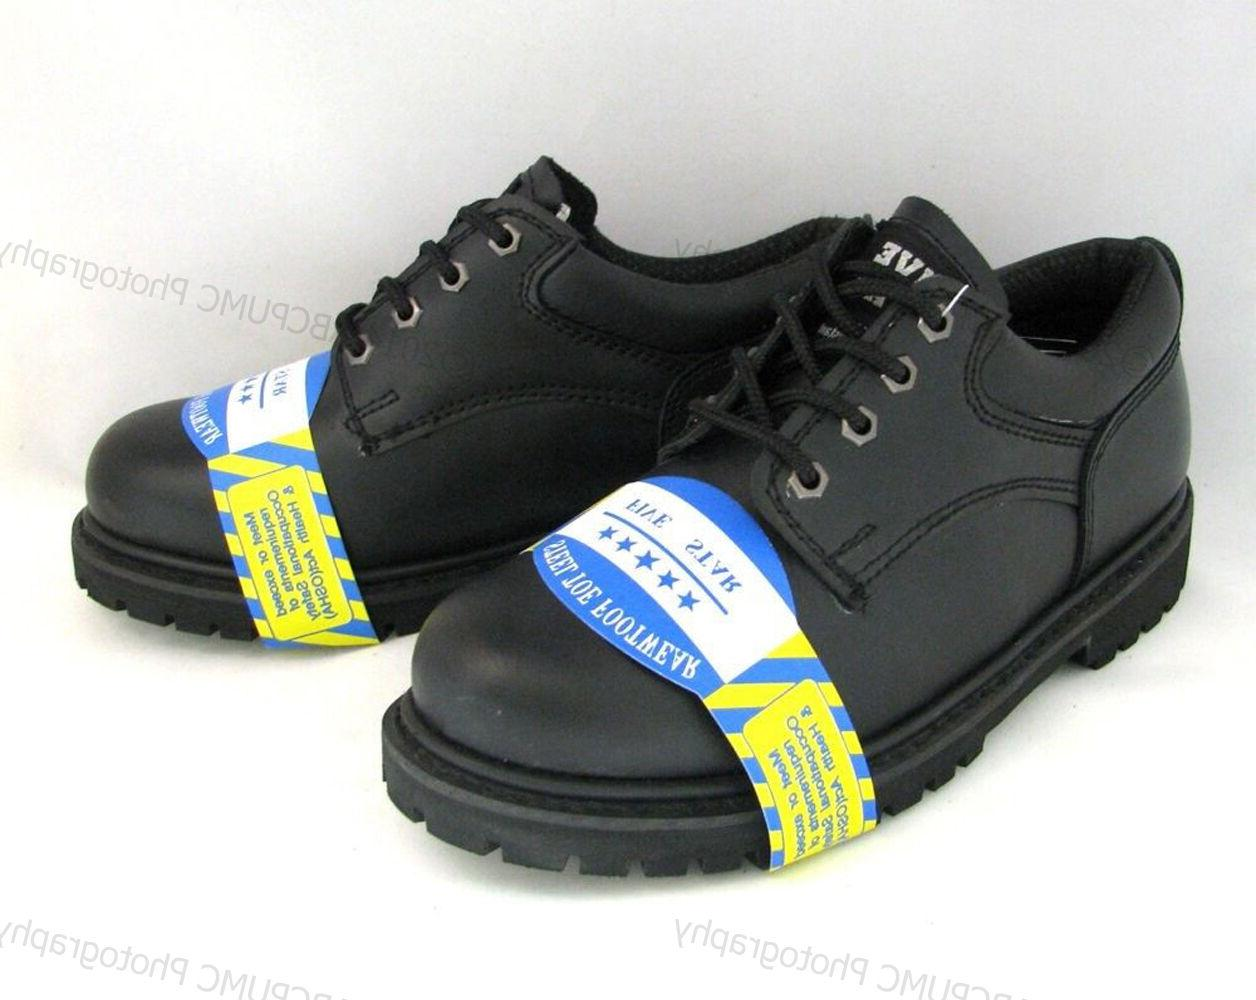 New Work Boots Black Leather Oil Shoes Sizes